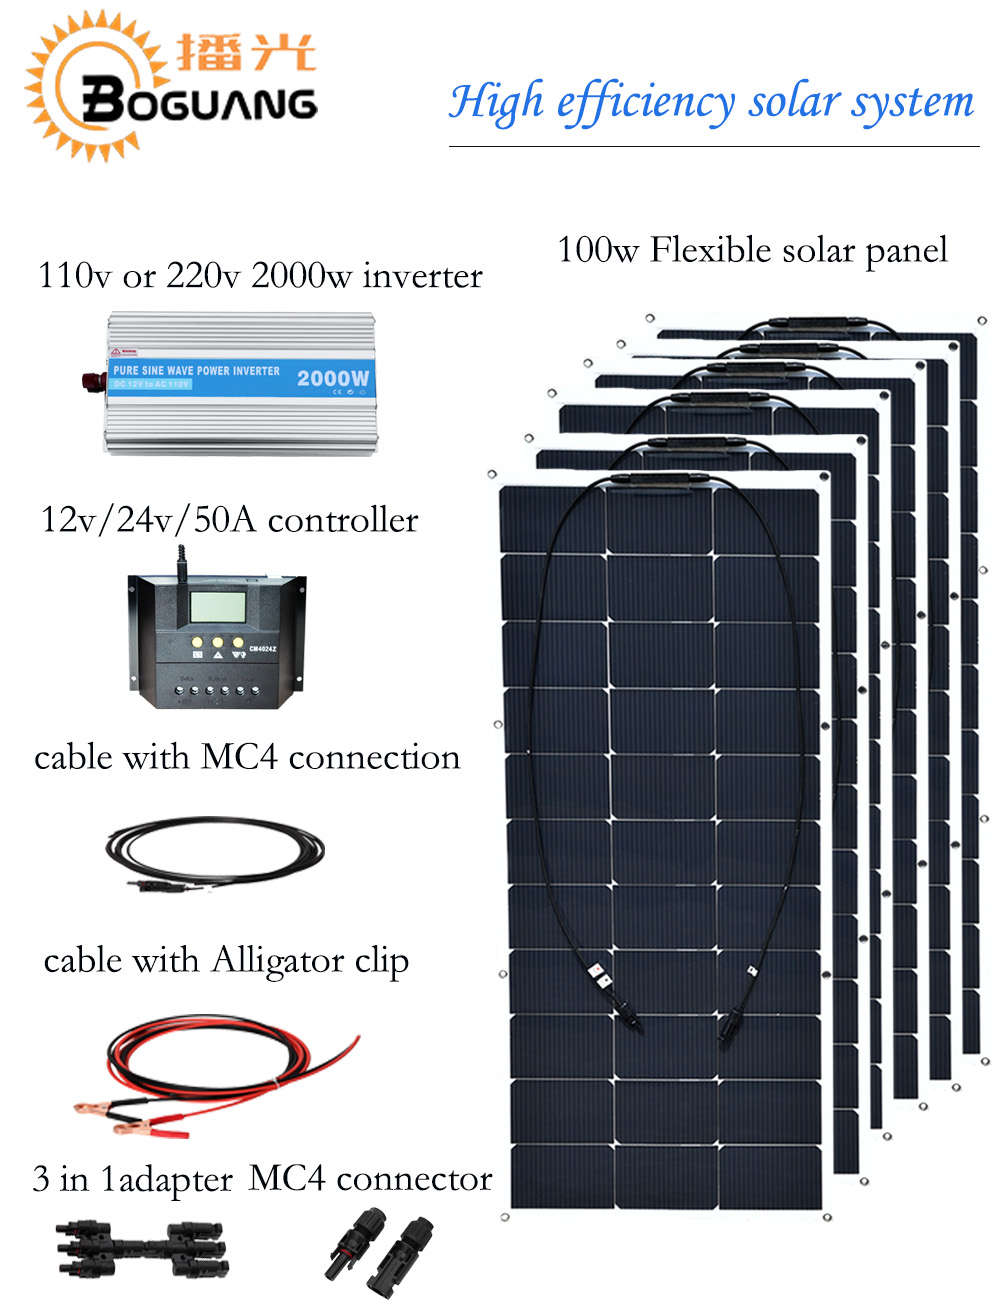 Boguang 600w solar system 100w semi flexible solar panel 110v 220v 2000w inverter 50A controller MC4 connector cable DIY kit